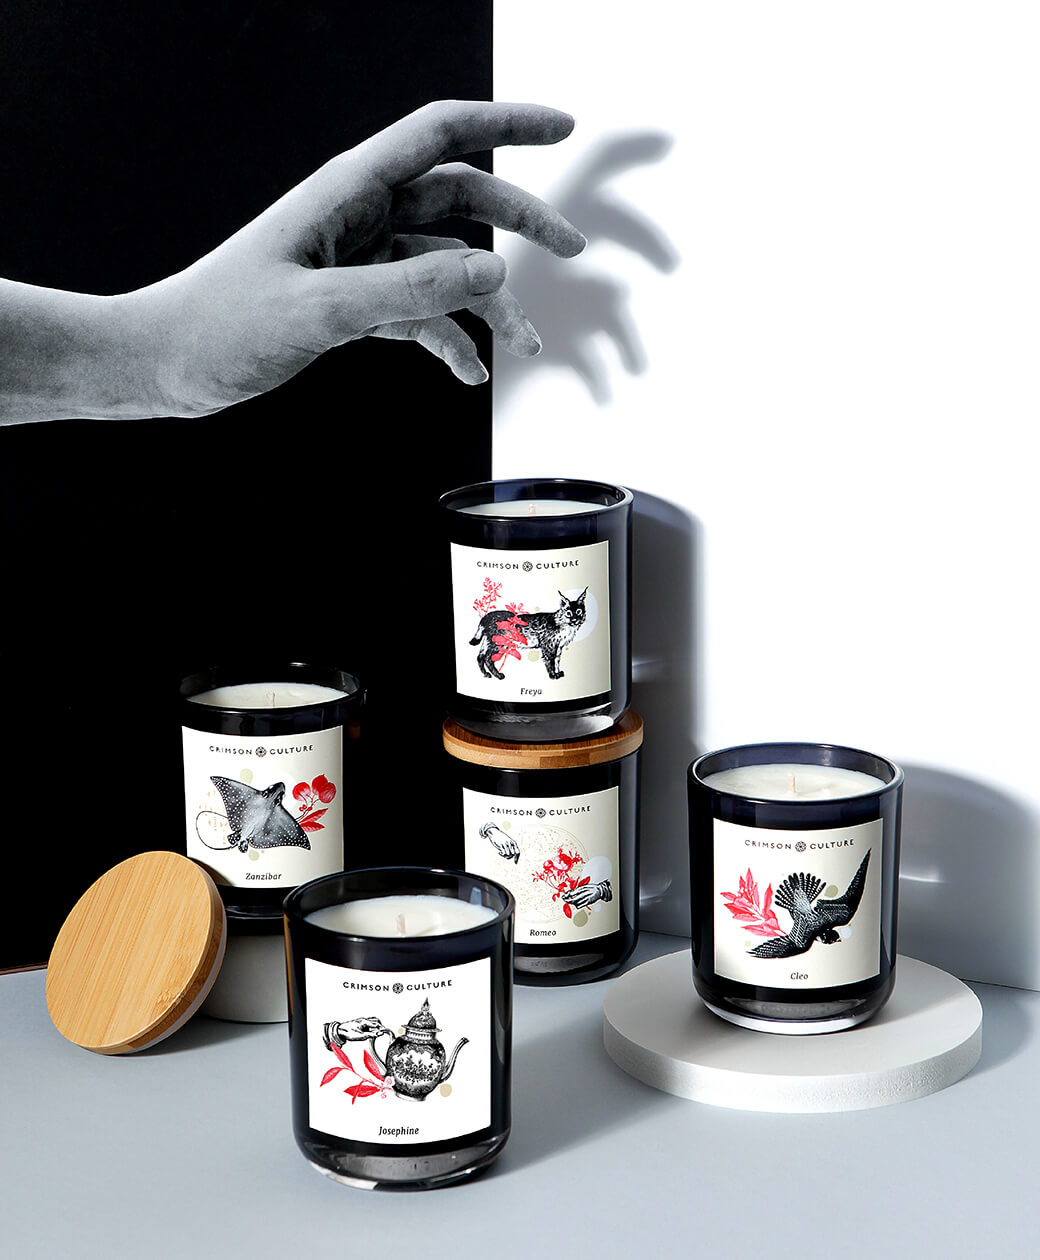 Art directed campaign image showing candle range with new labelling and collaged paper hand interacting with scene